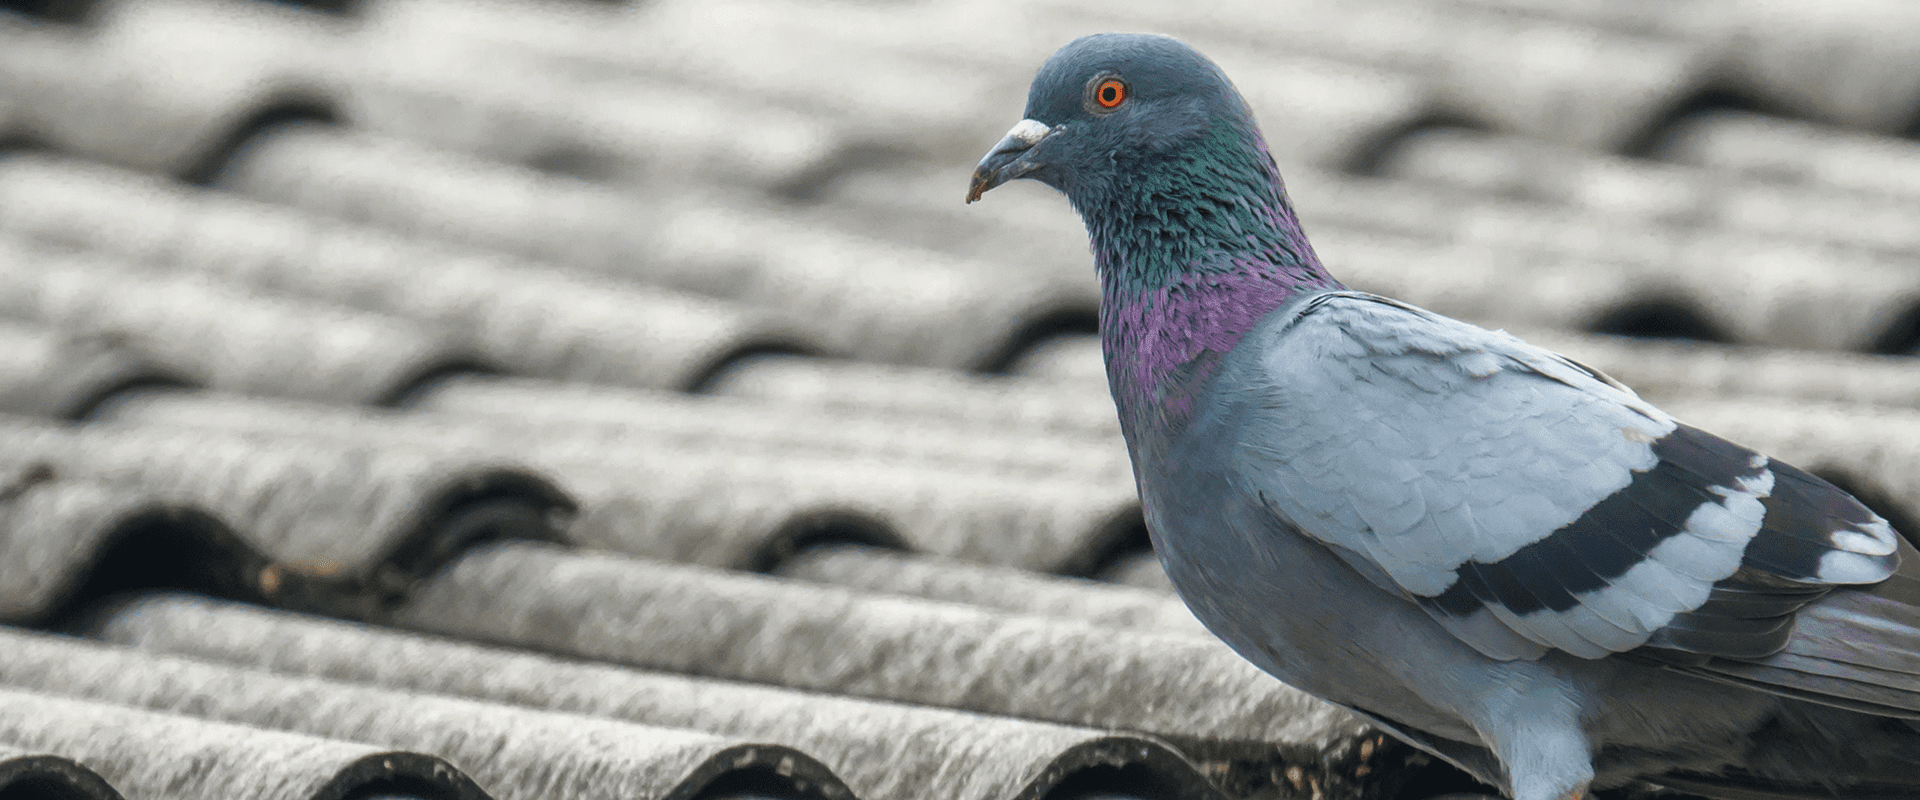 pigeon on a north carolina businesses roof